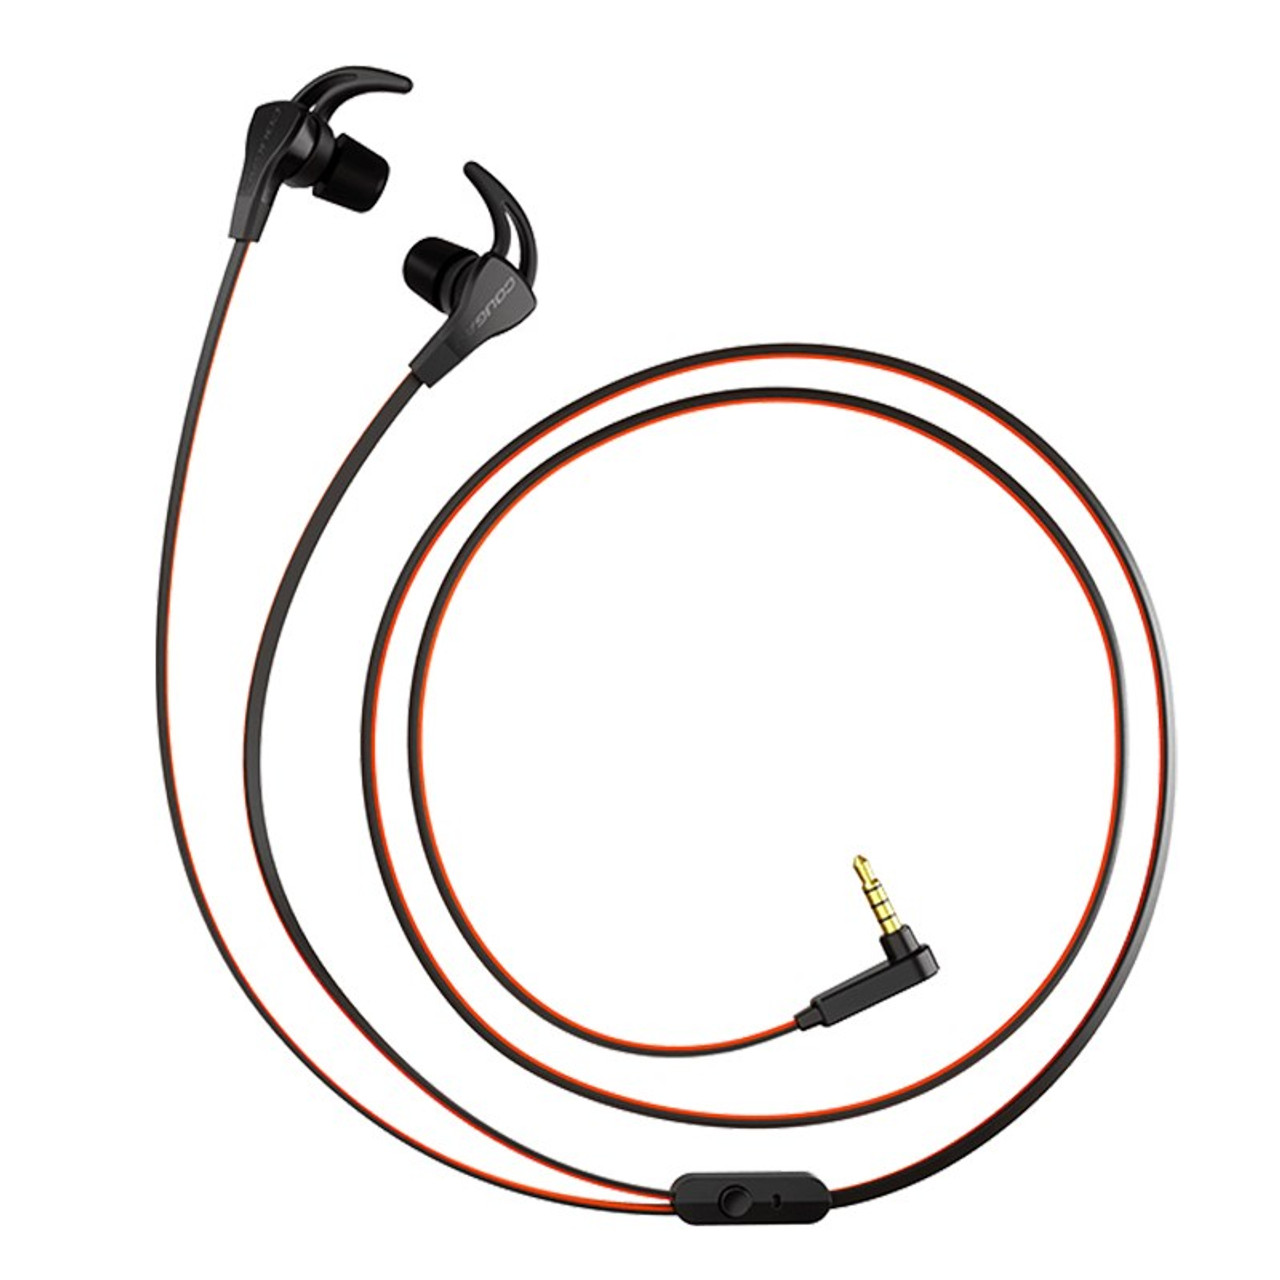 Image for Cougar Havok Earbuds with Microphone CX Computer Superstore